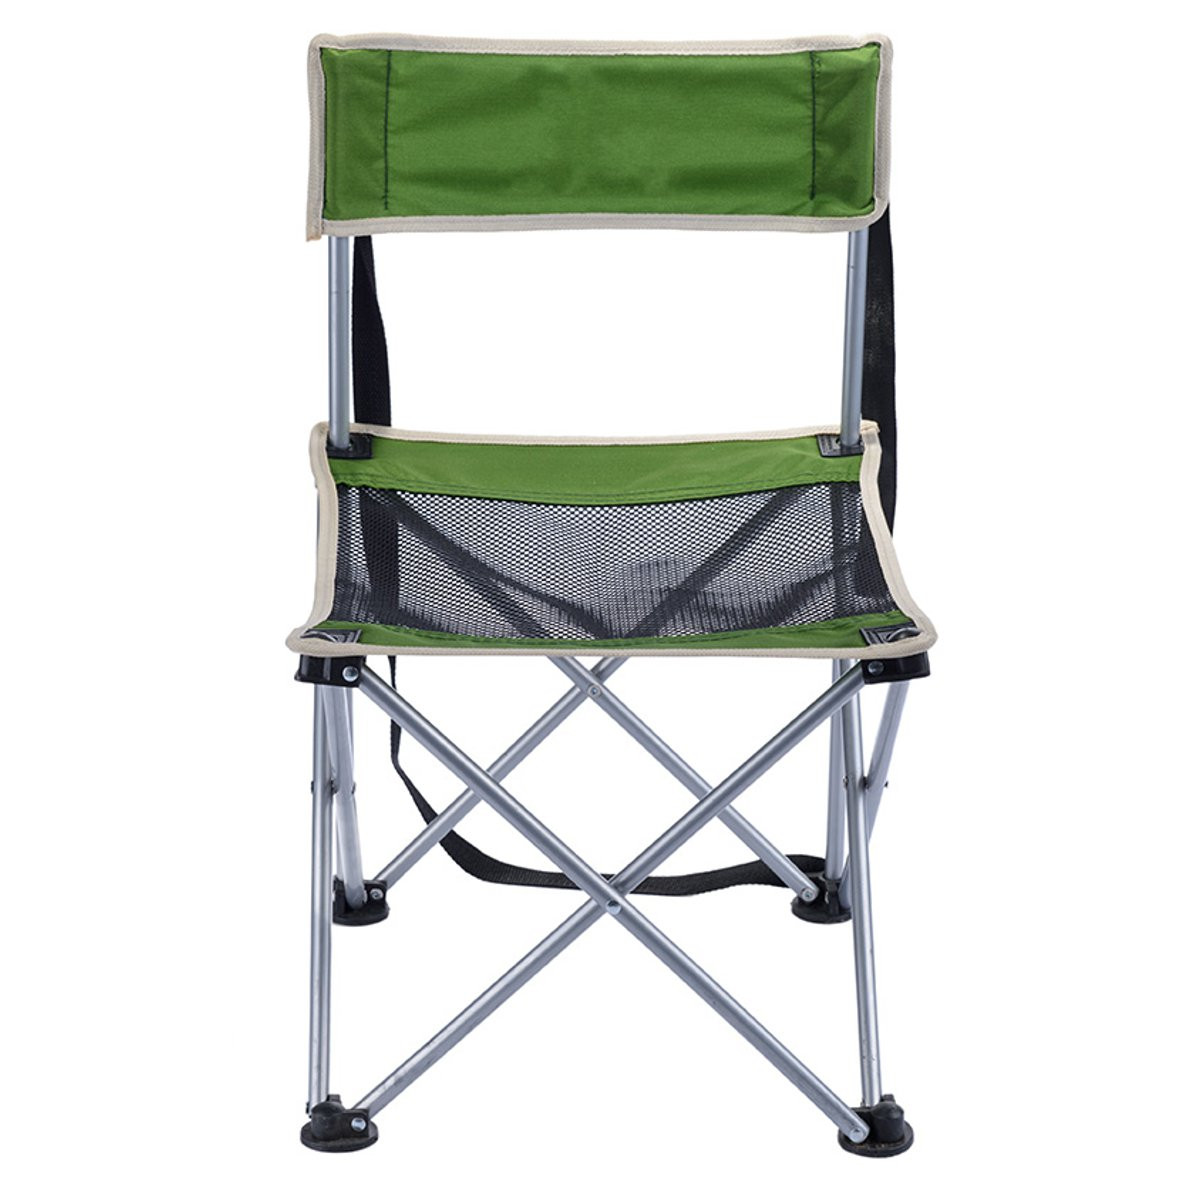 outdoor folding chair parts all weather rocking chairs camping portable lightweight fishing